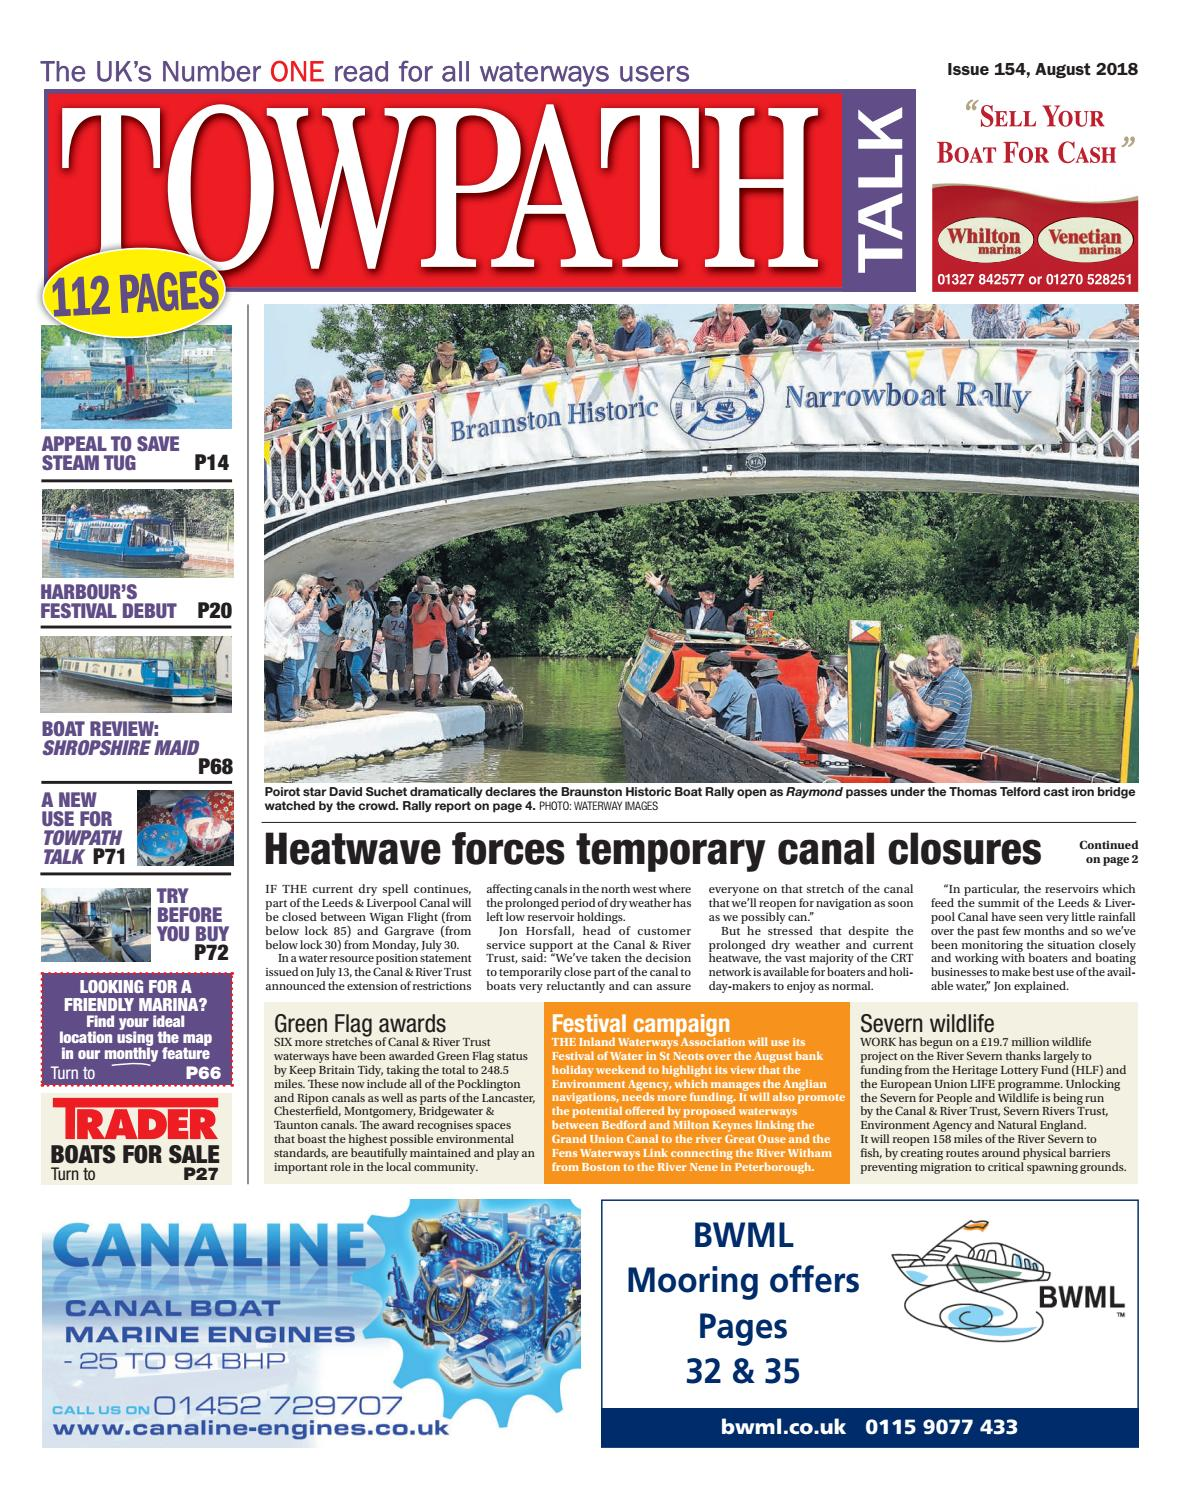 towpath talk 154 august 2018 by mortons media group ltd issuu